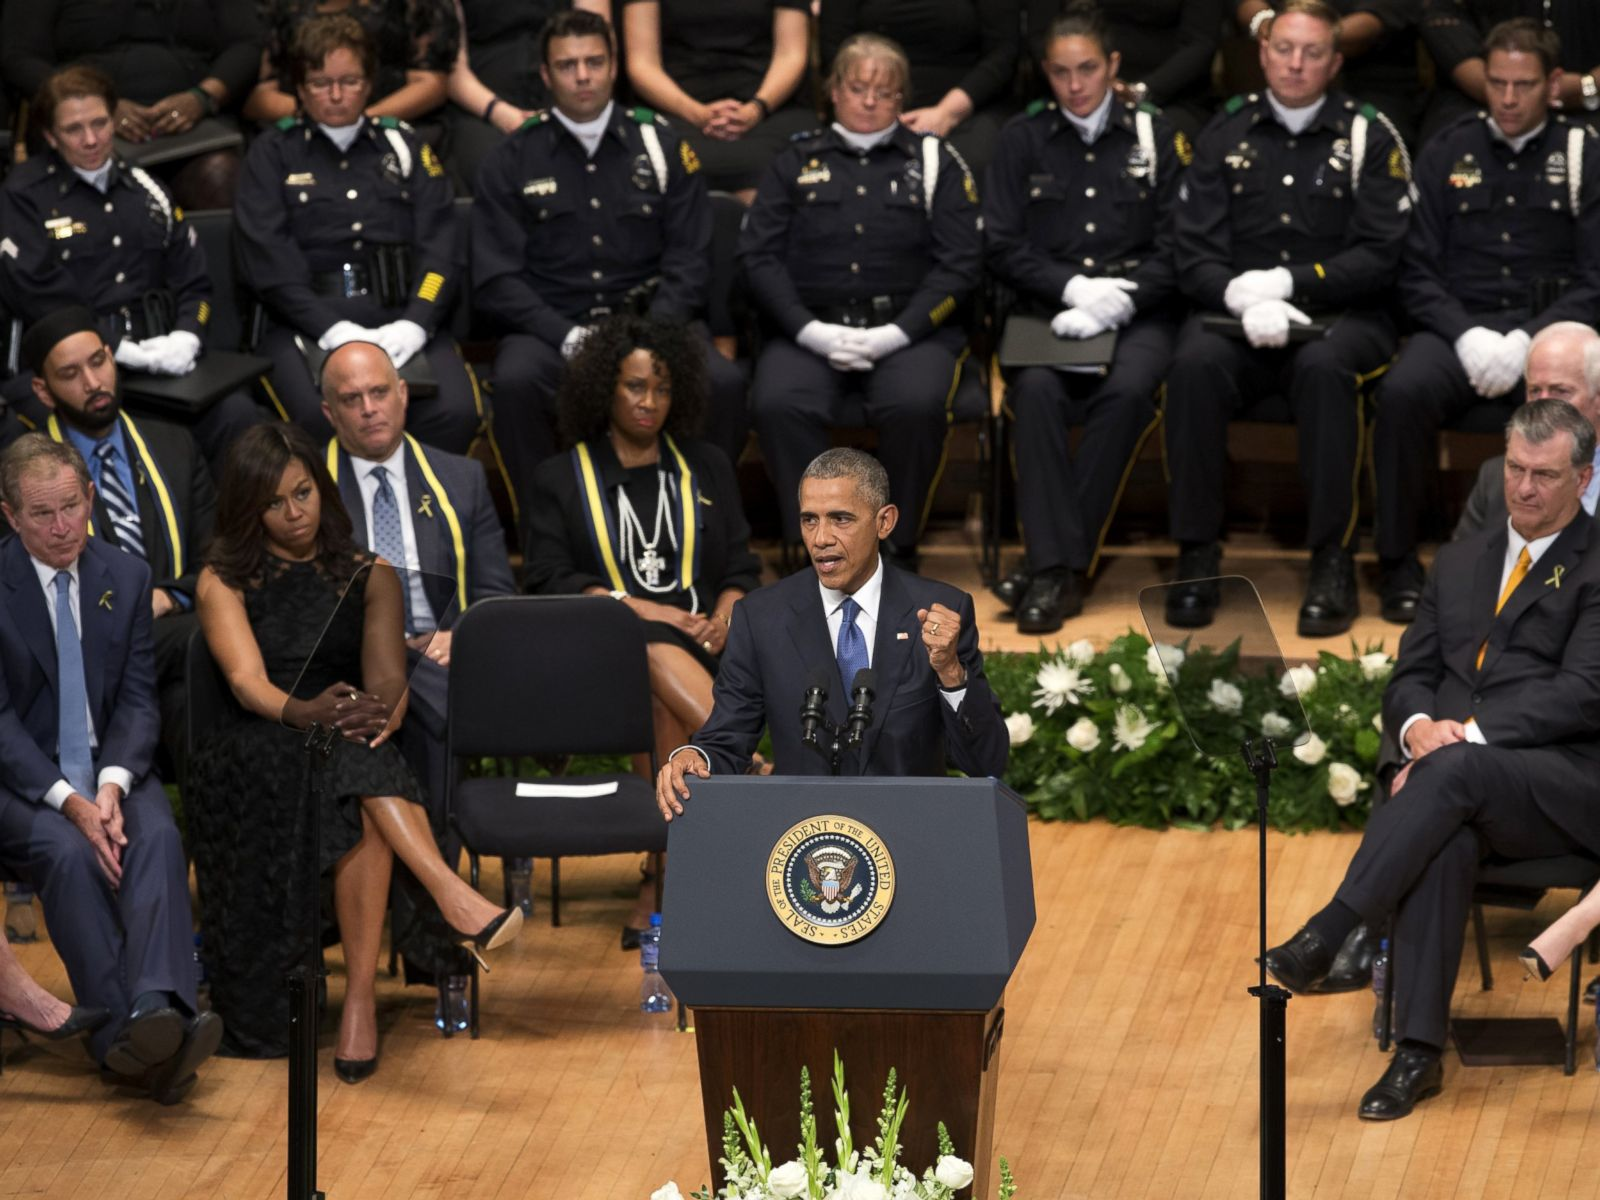 From the White House: Building Trust Between our Communities and Institutions